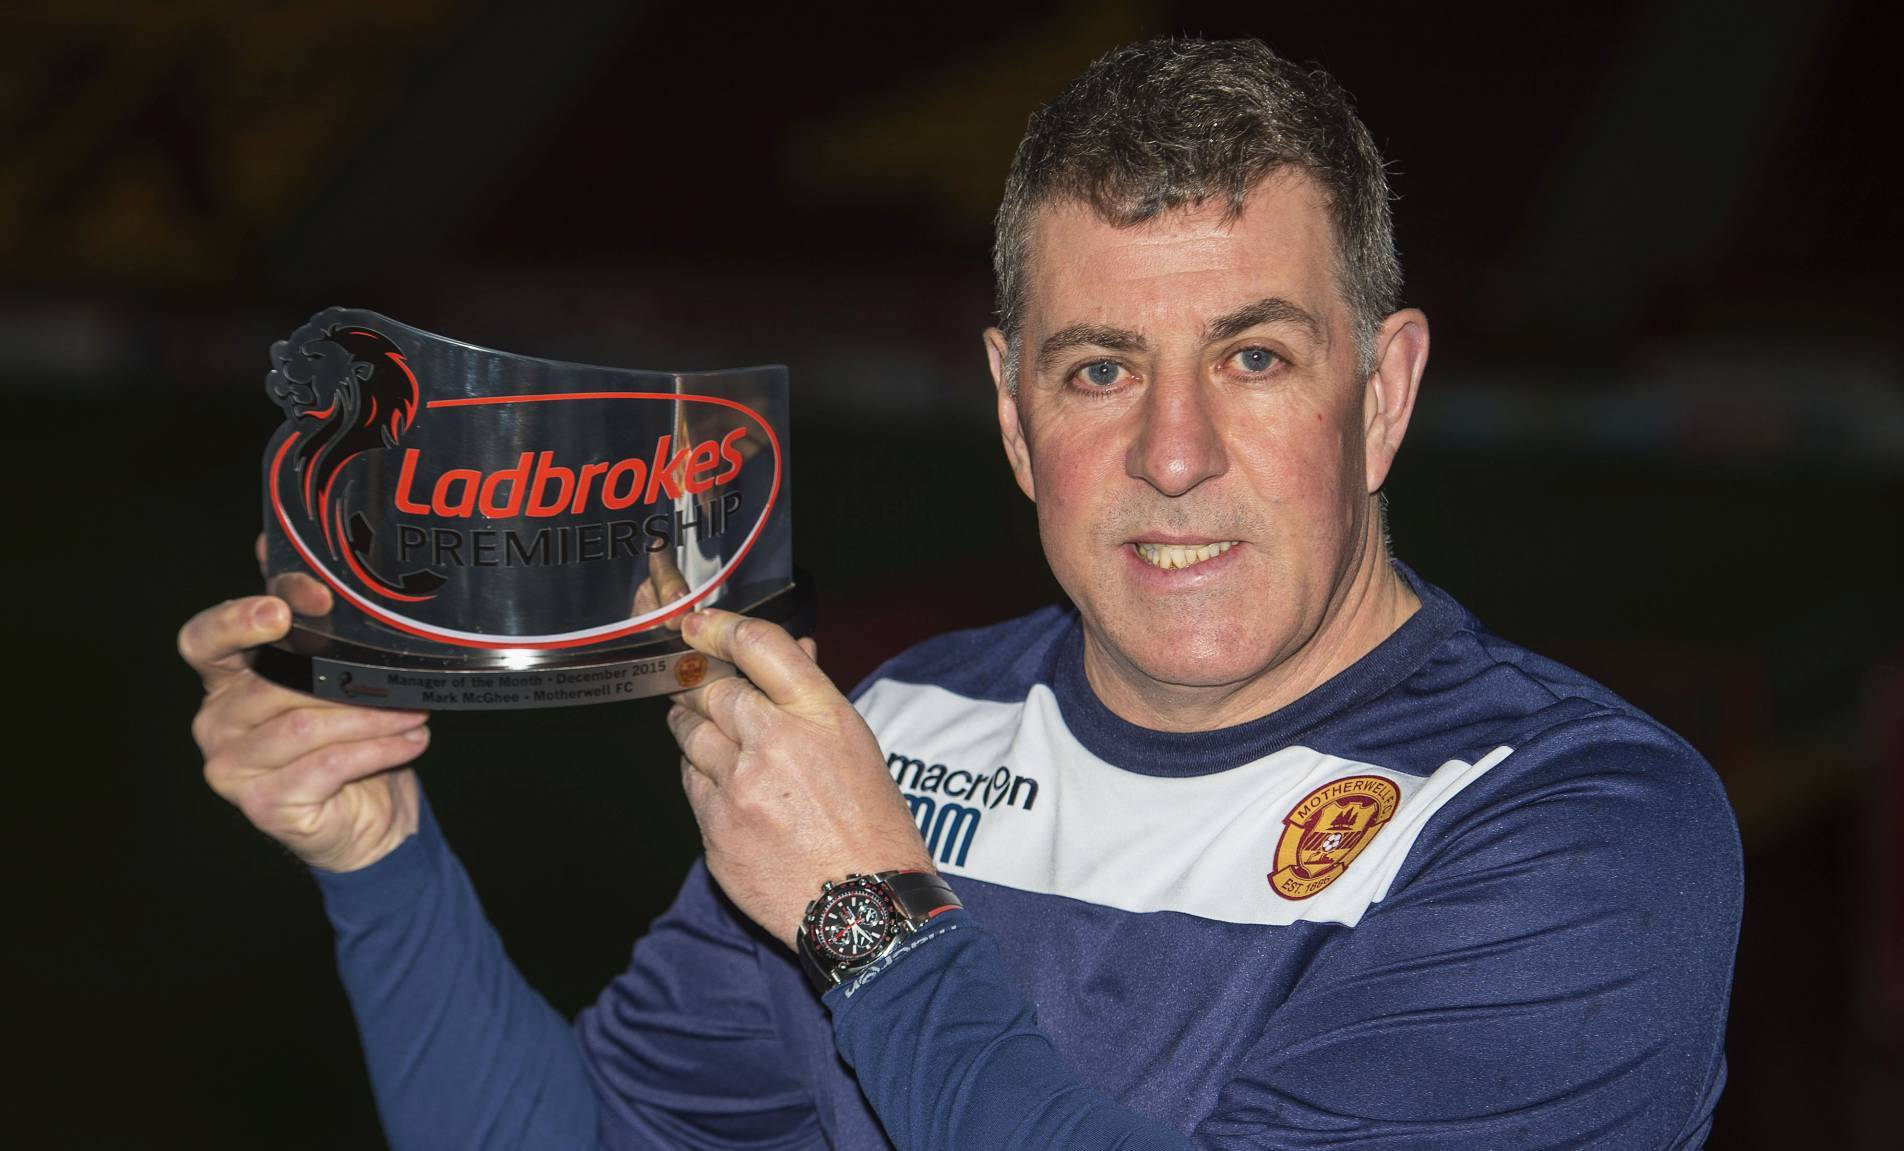 Motherwell manager Mark McGhee is presented with the Ladbrokes Manager of the Month Award